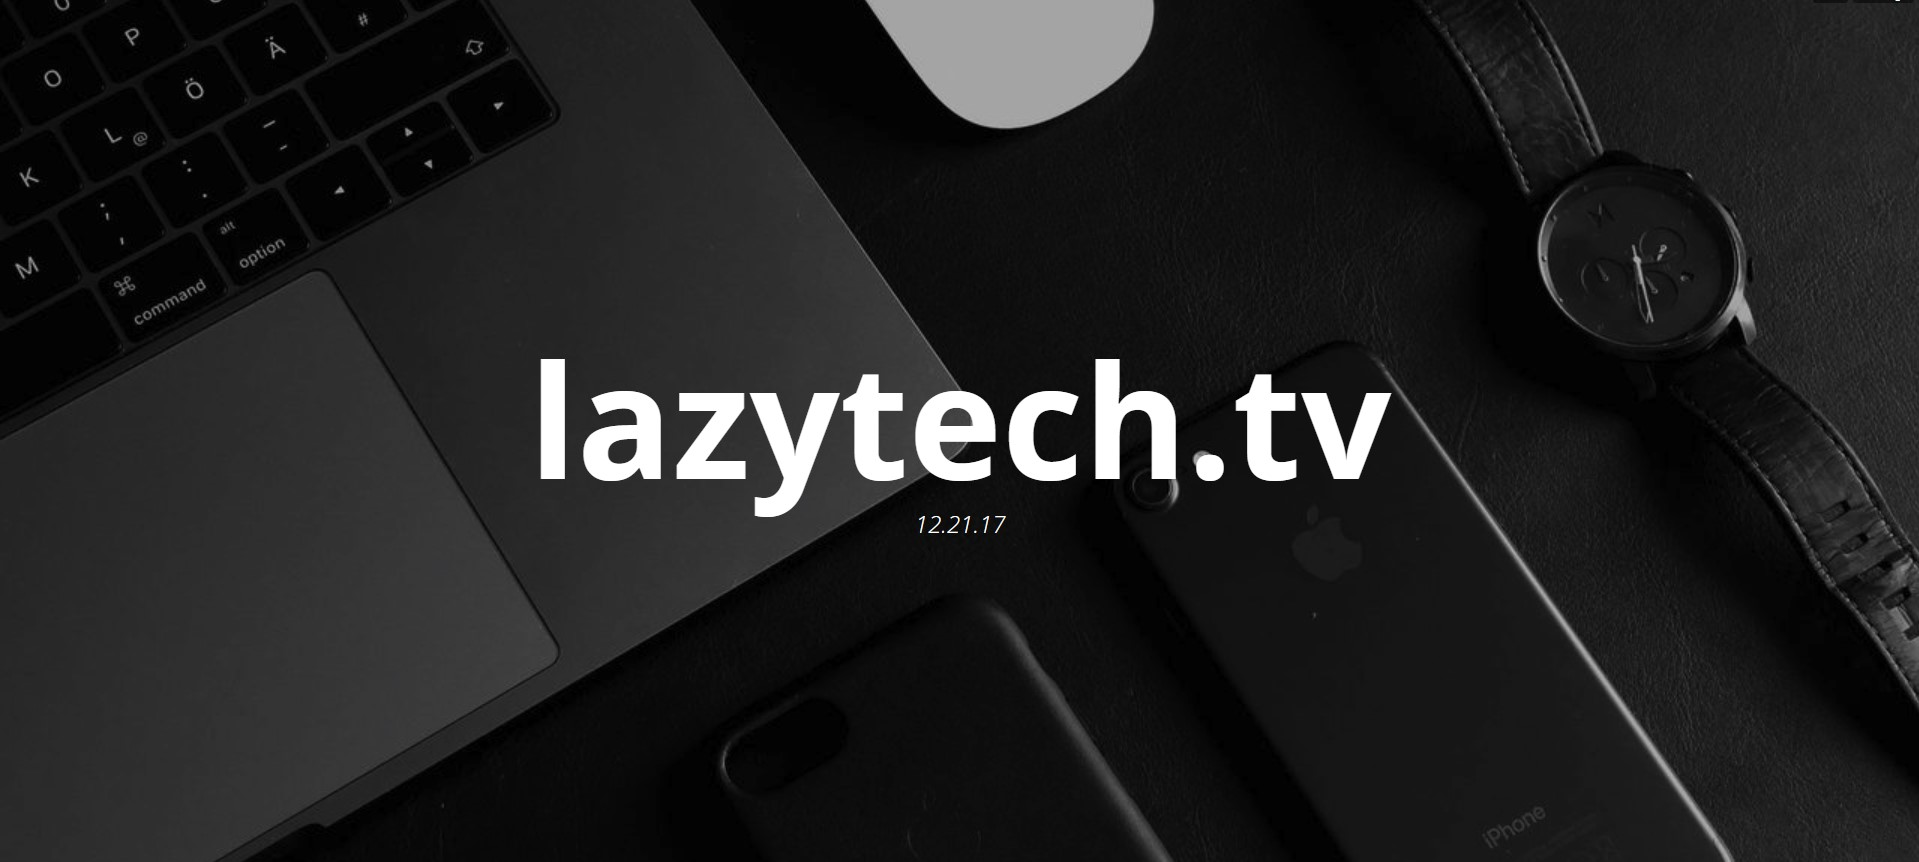 lazytech-tv-splash-2